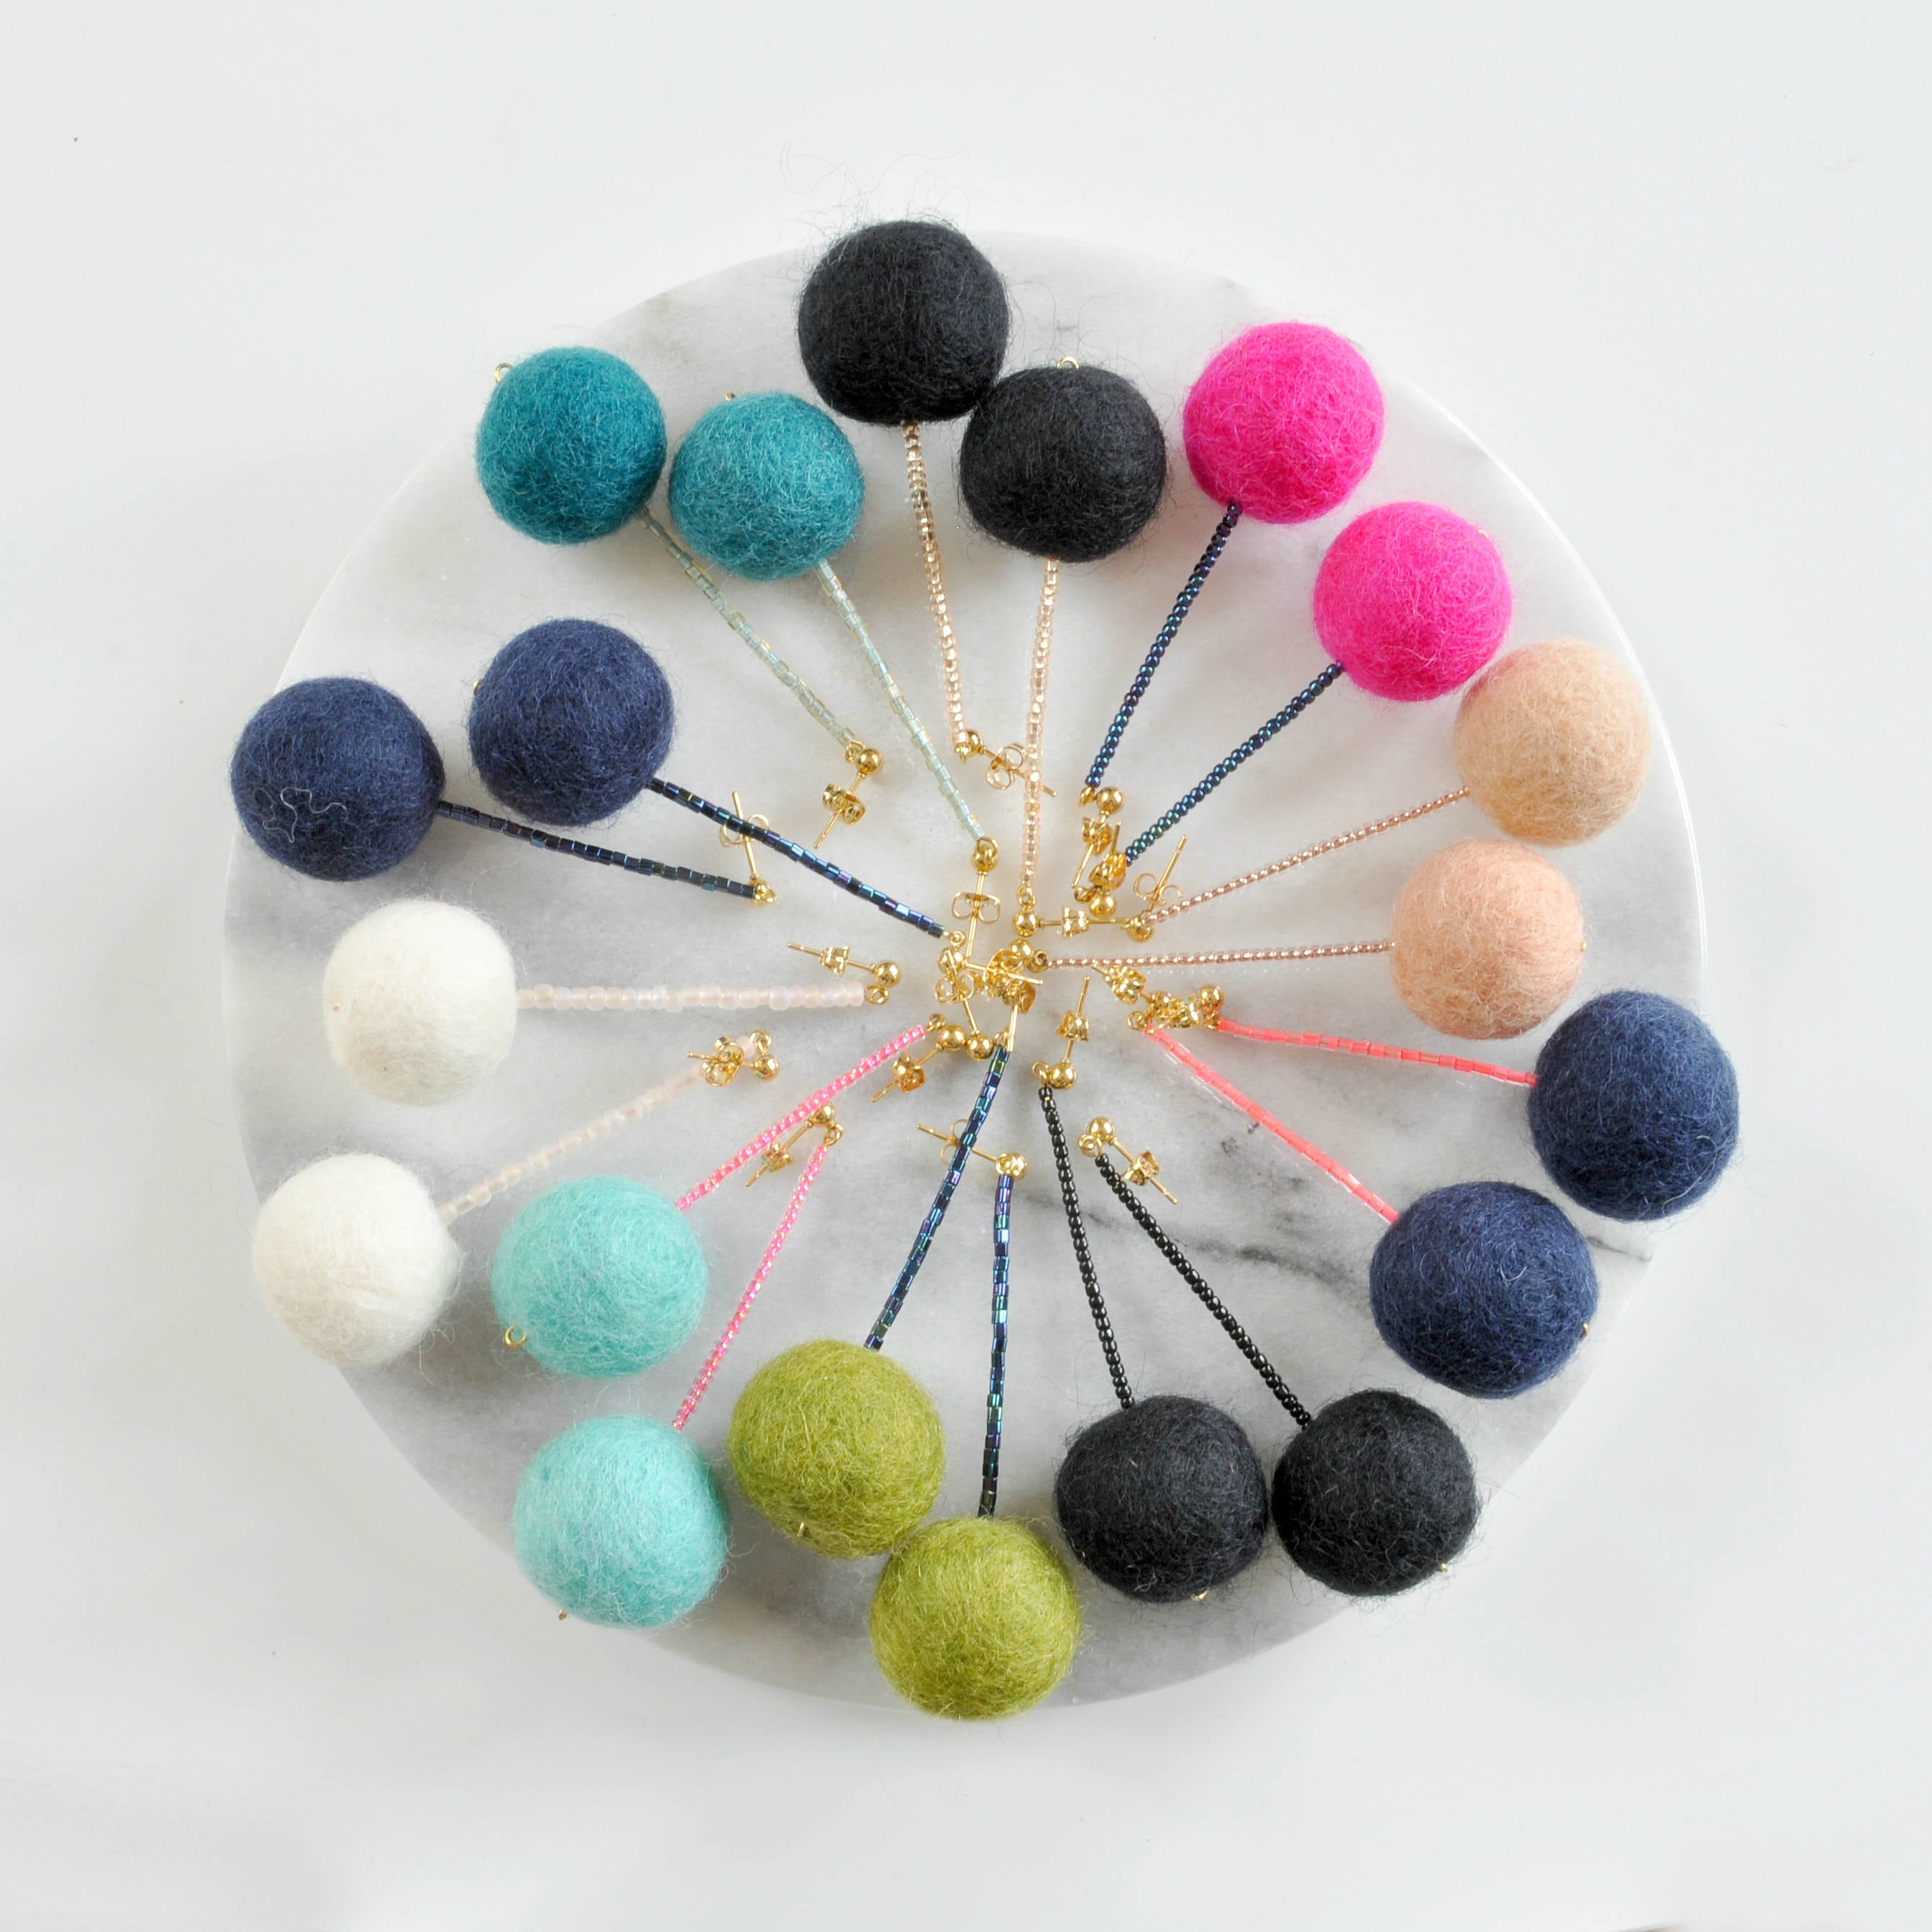 Libby & Smee Blush Earrings and other pom pom earrings